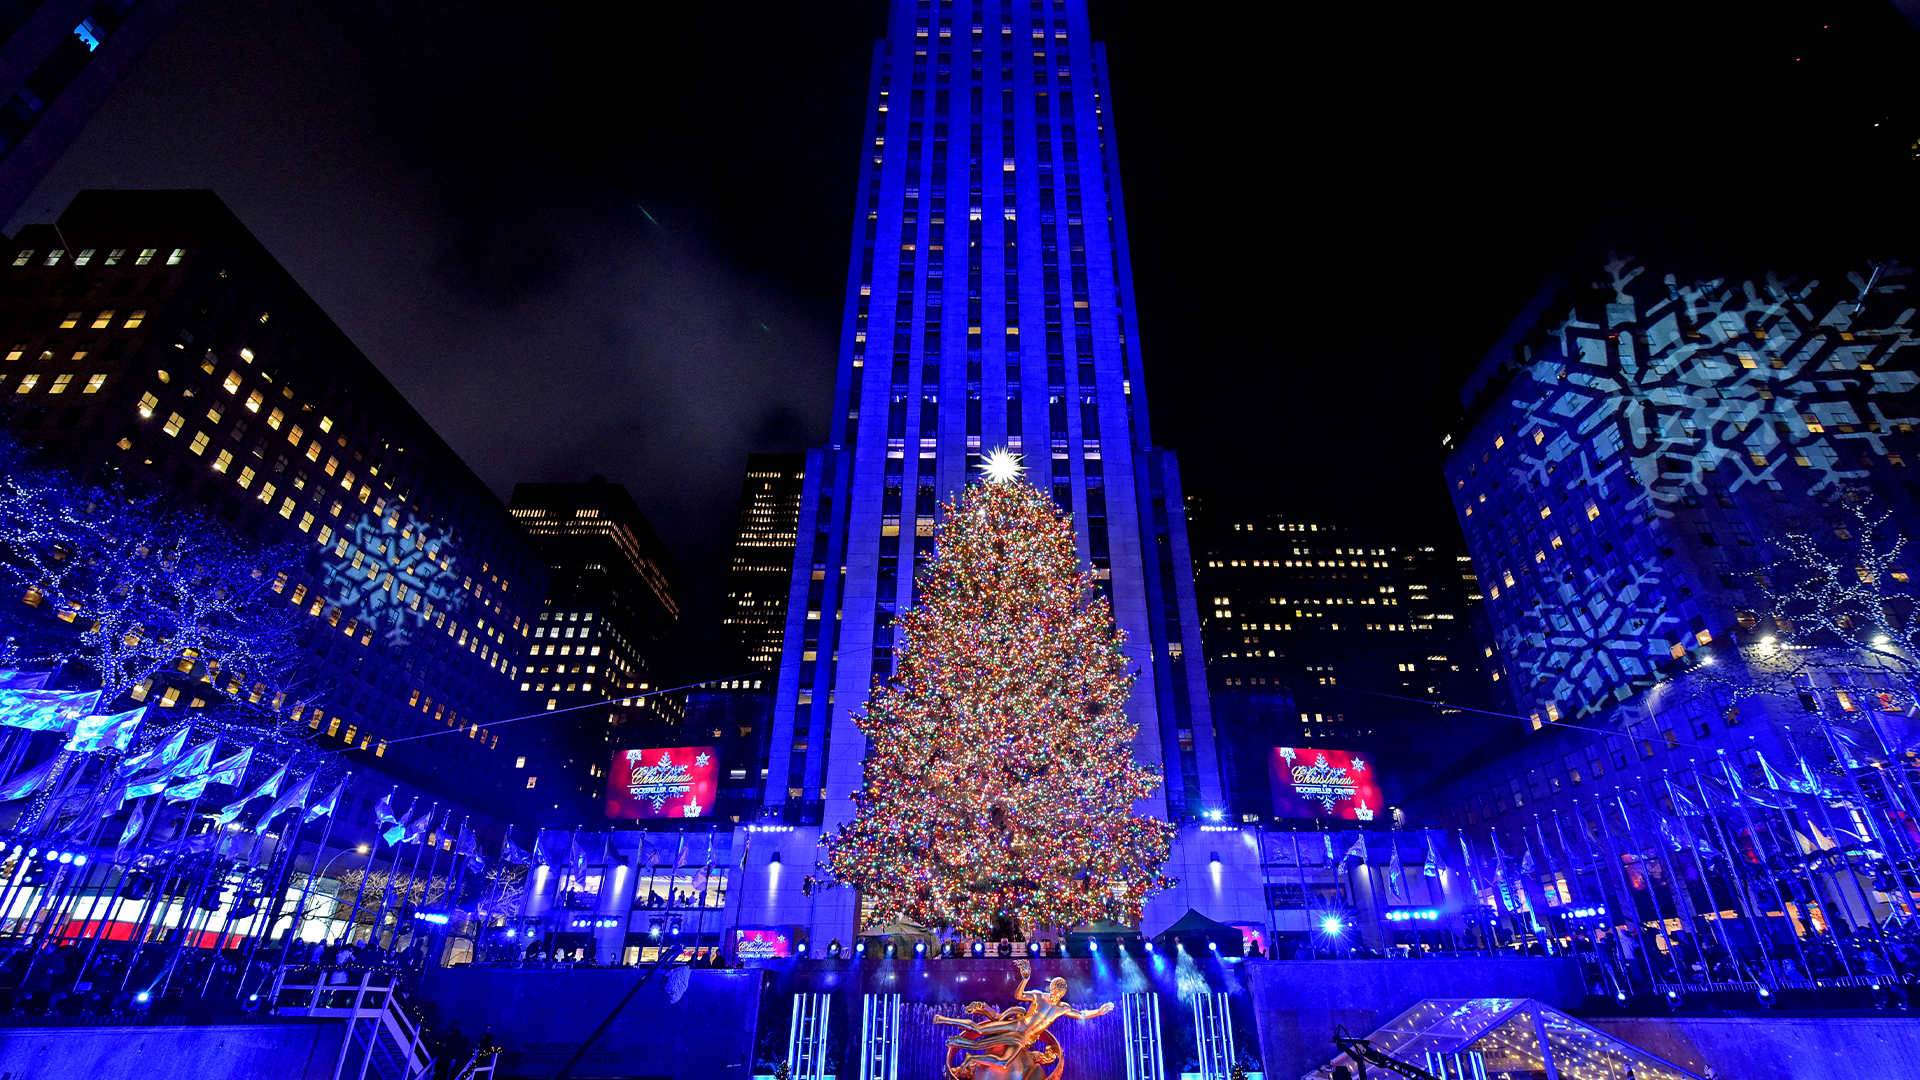 Rockefeller Plaza Christmas Tree 2020 Rockefeller Center Christmas tree to return, possibly without